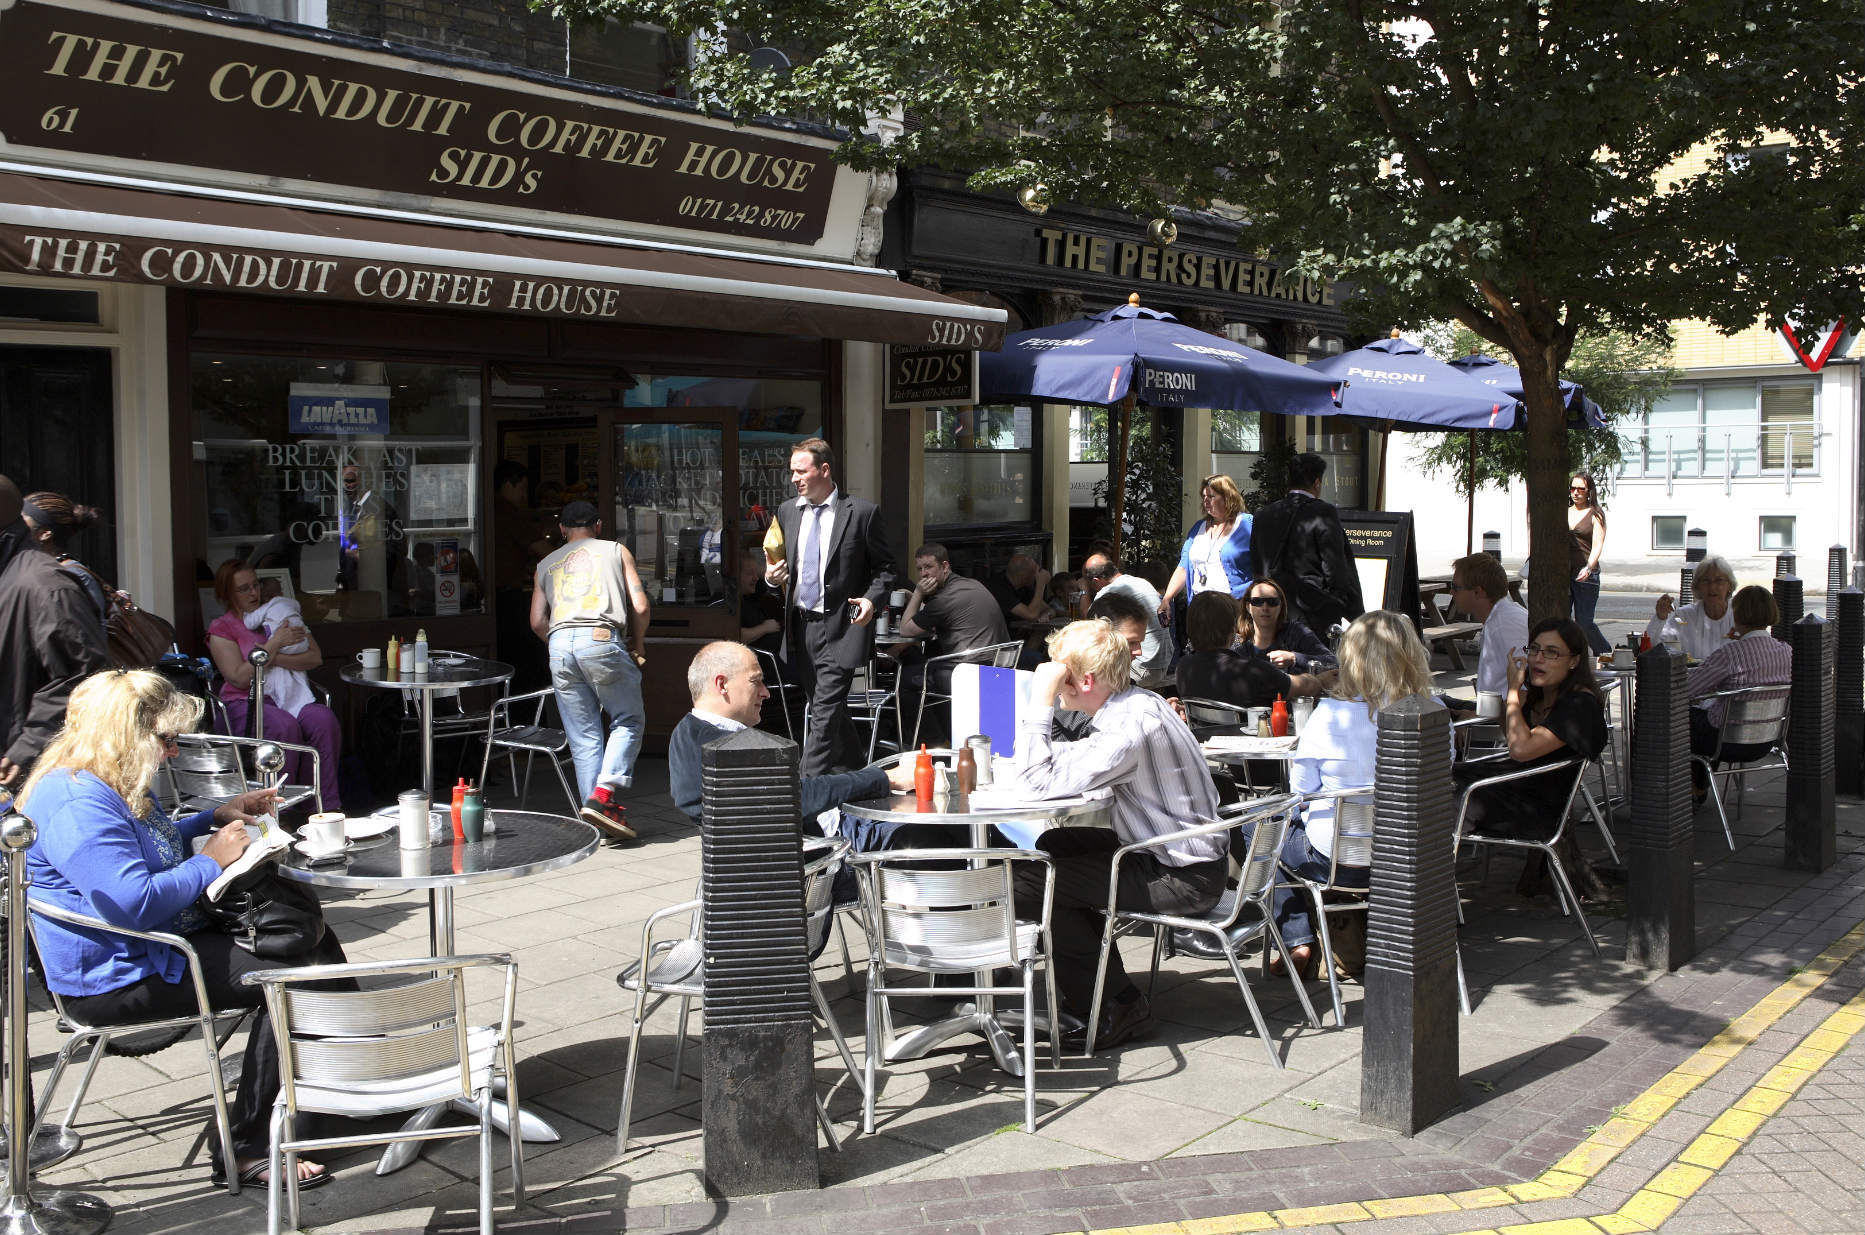 18 reasons to go to Lamb's Conduit Street, WC1